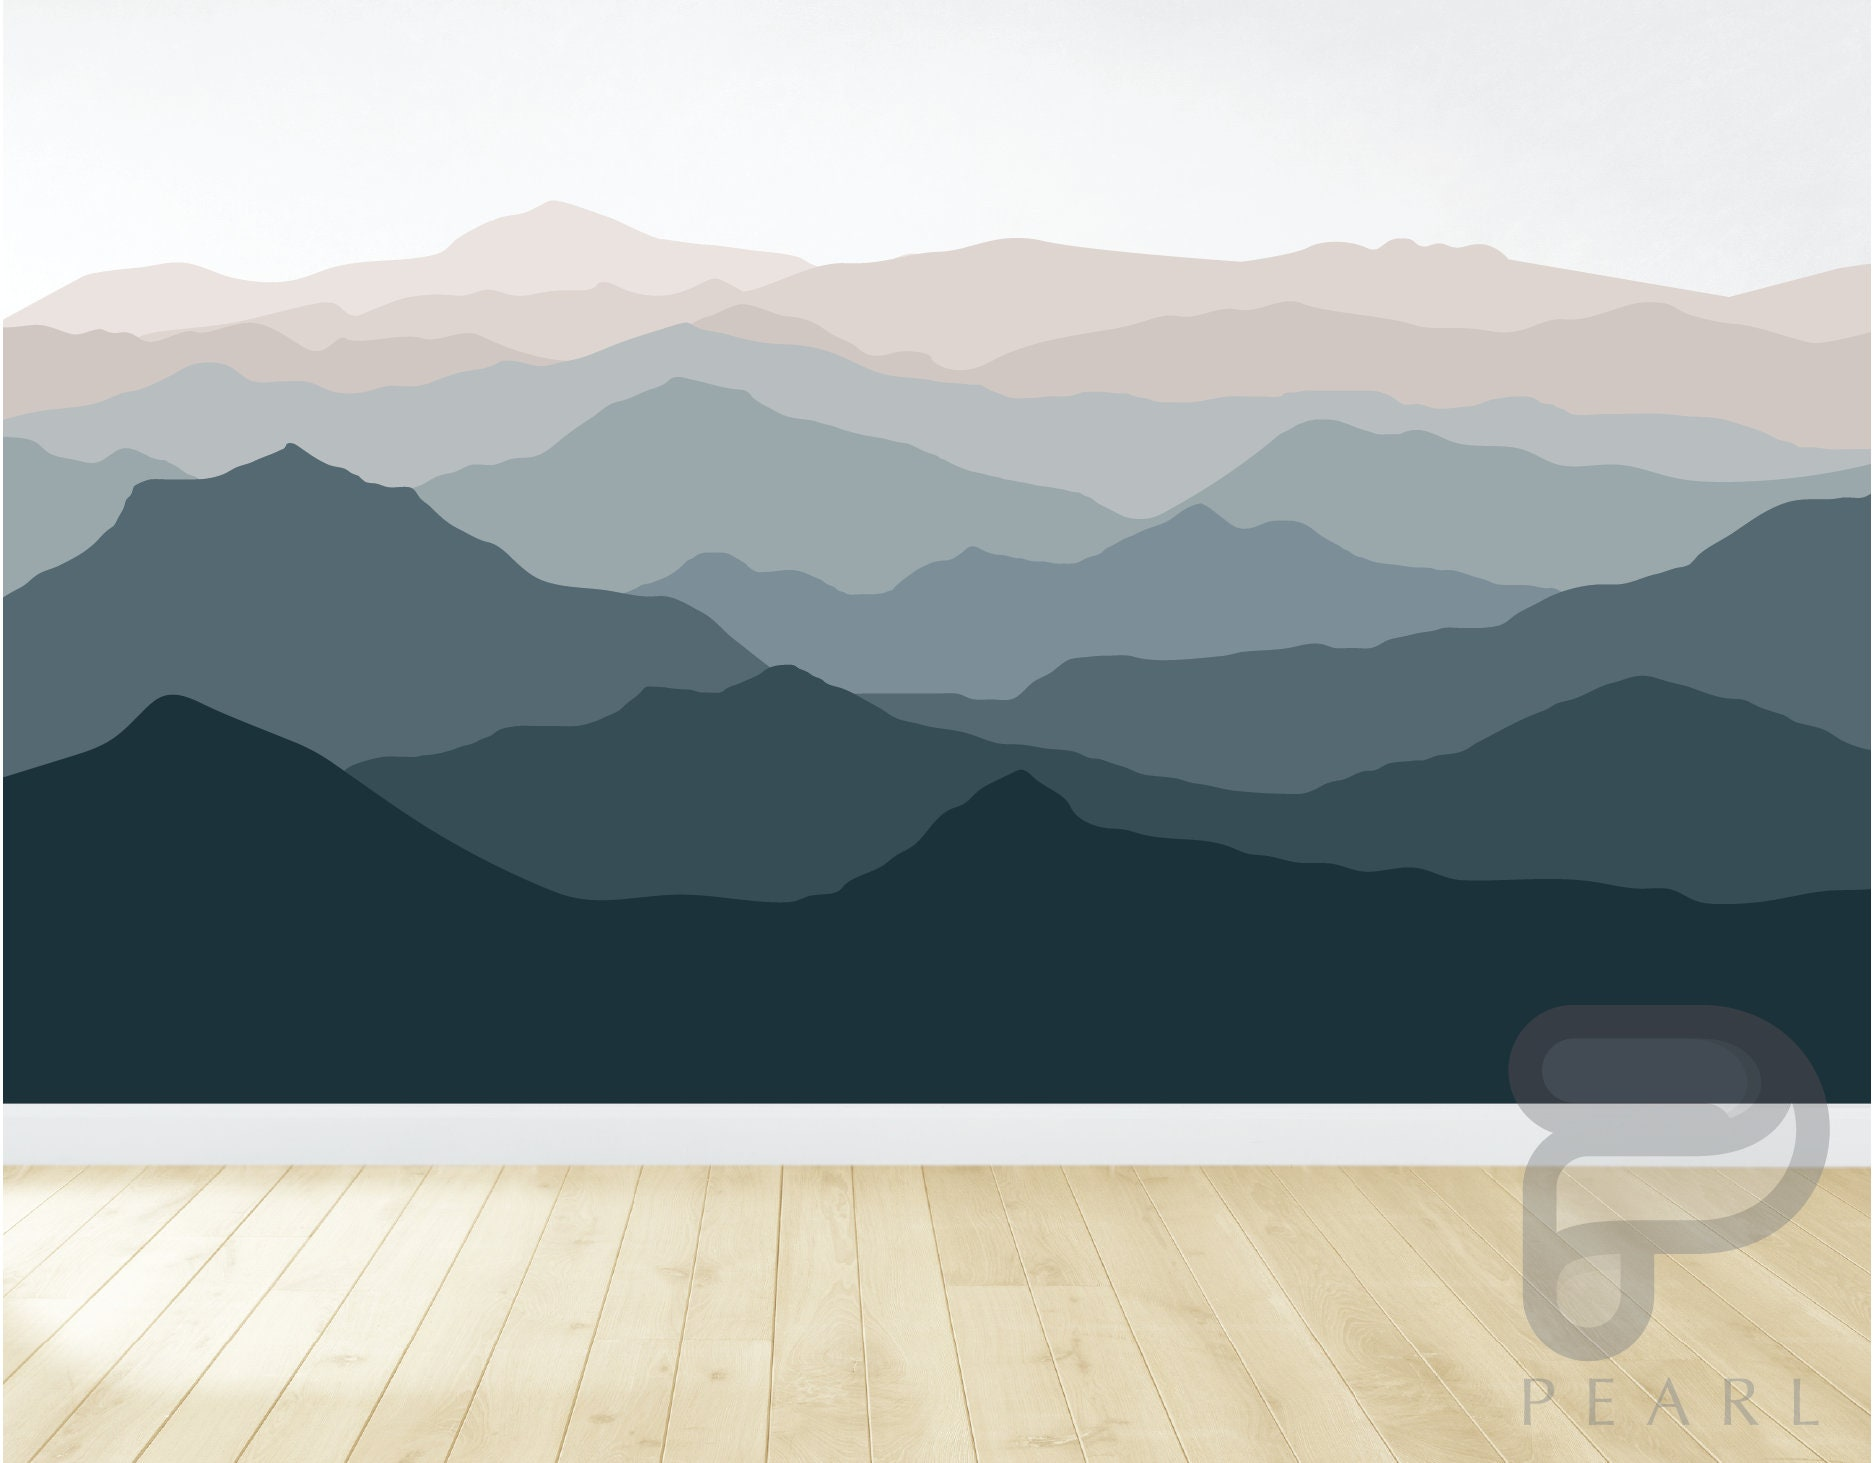 Details about  /3D Art Mountain N802 Wallpaper Wall Mural Removable Self-adhesive Sticker Amy